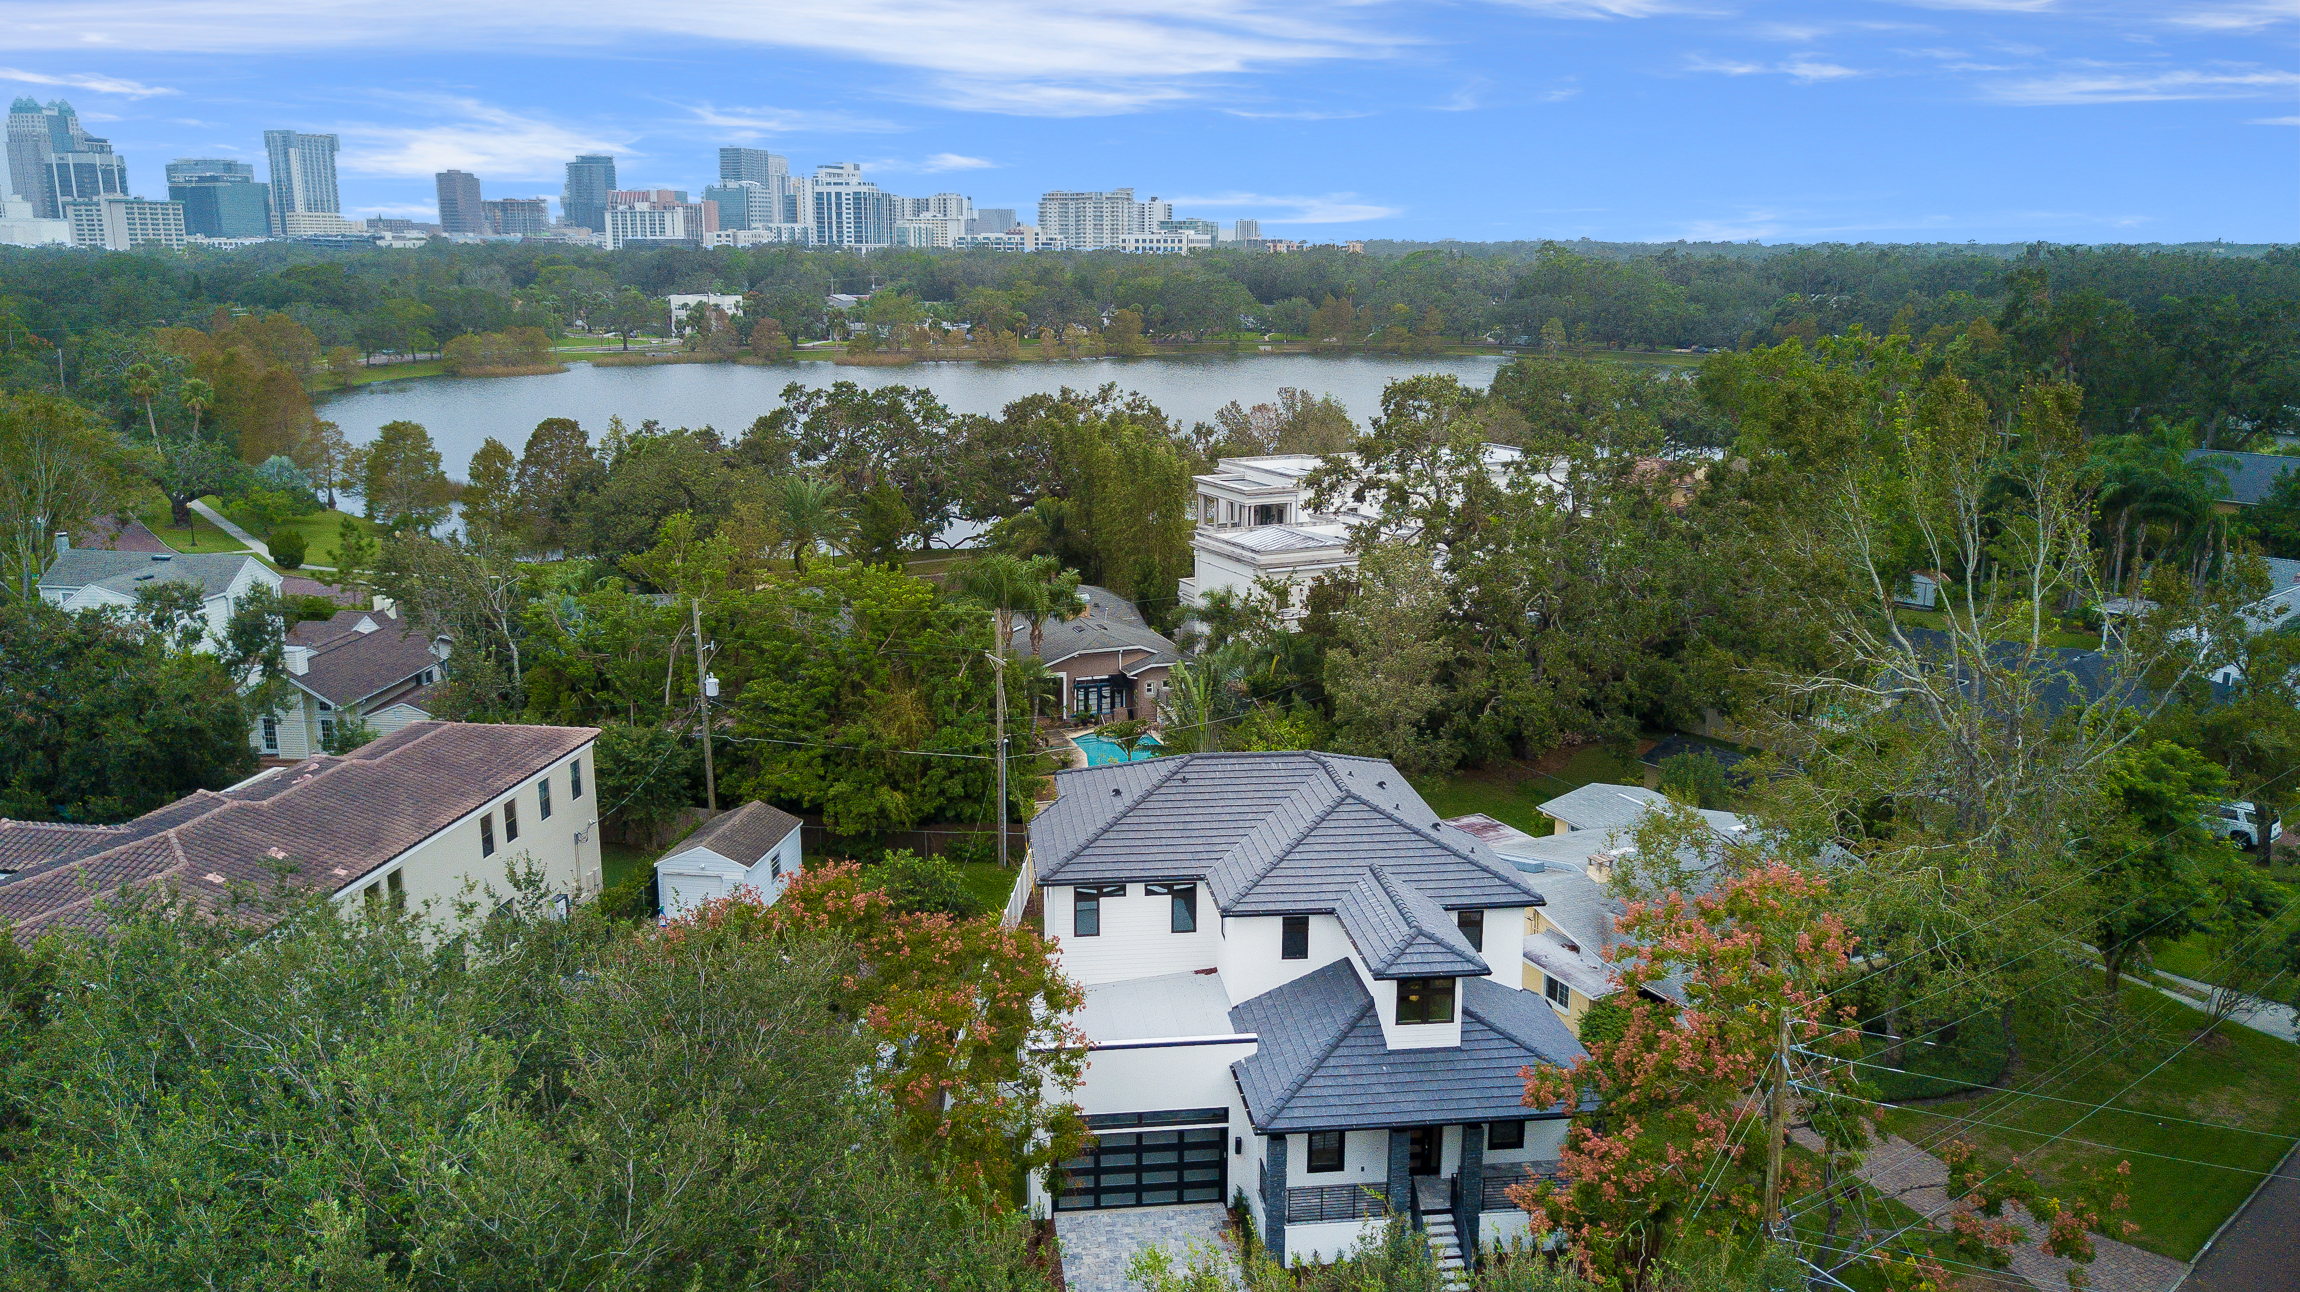 premium locations - the best, most sought-after neighborhoods in Orlando